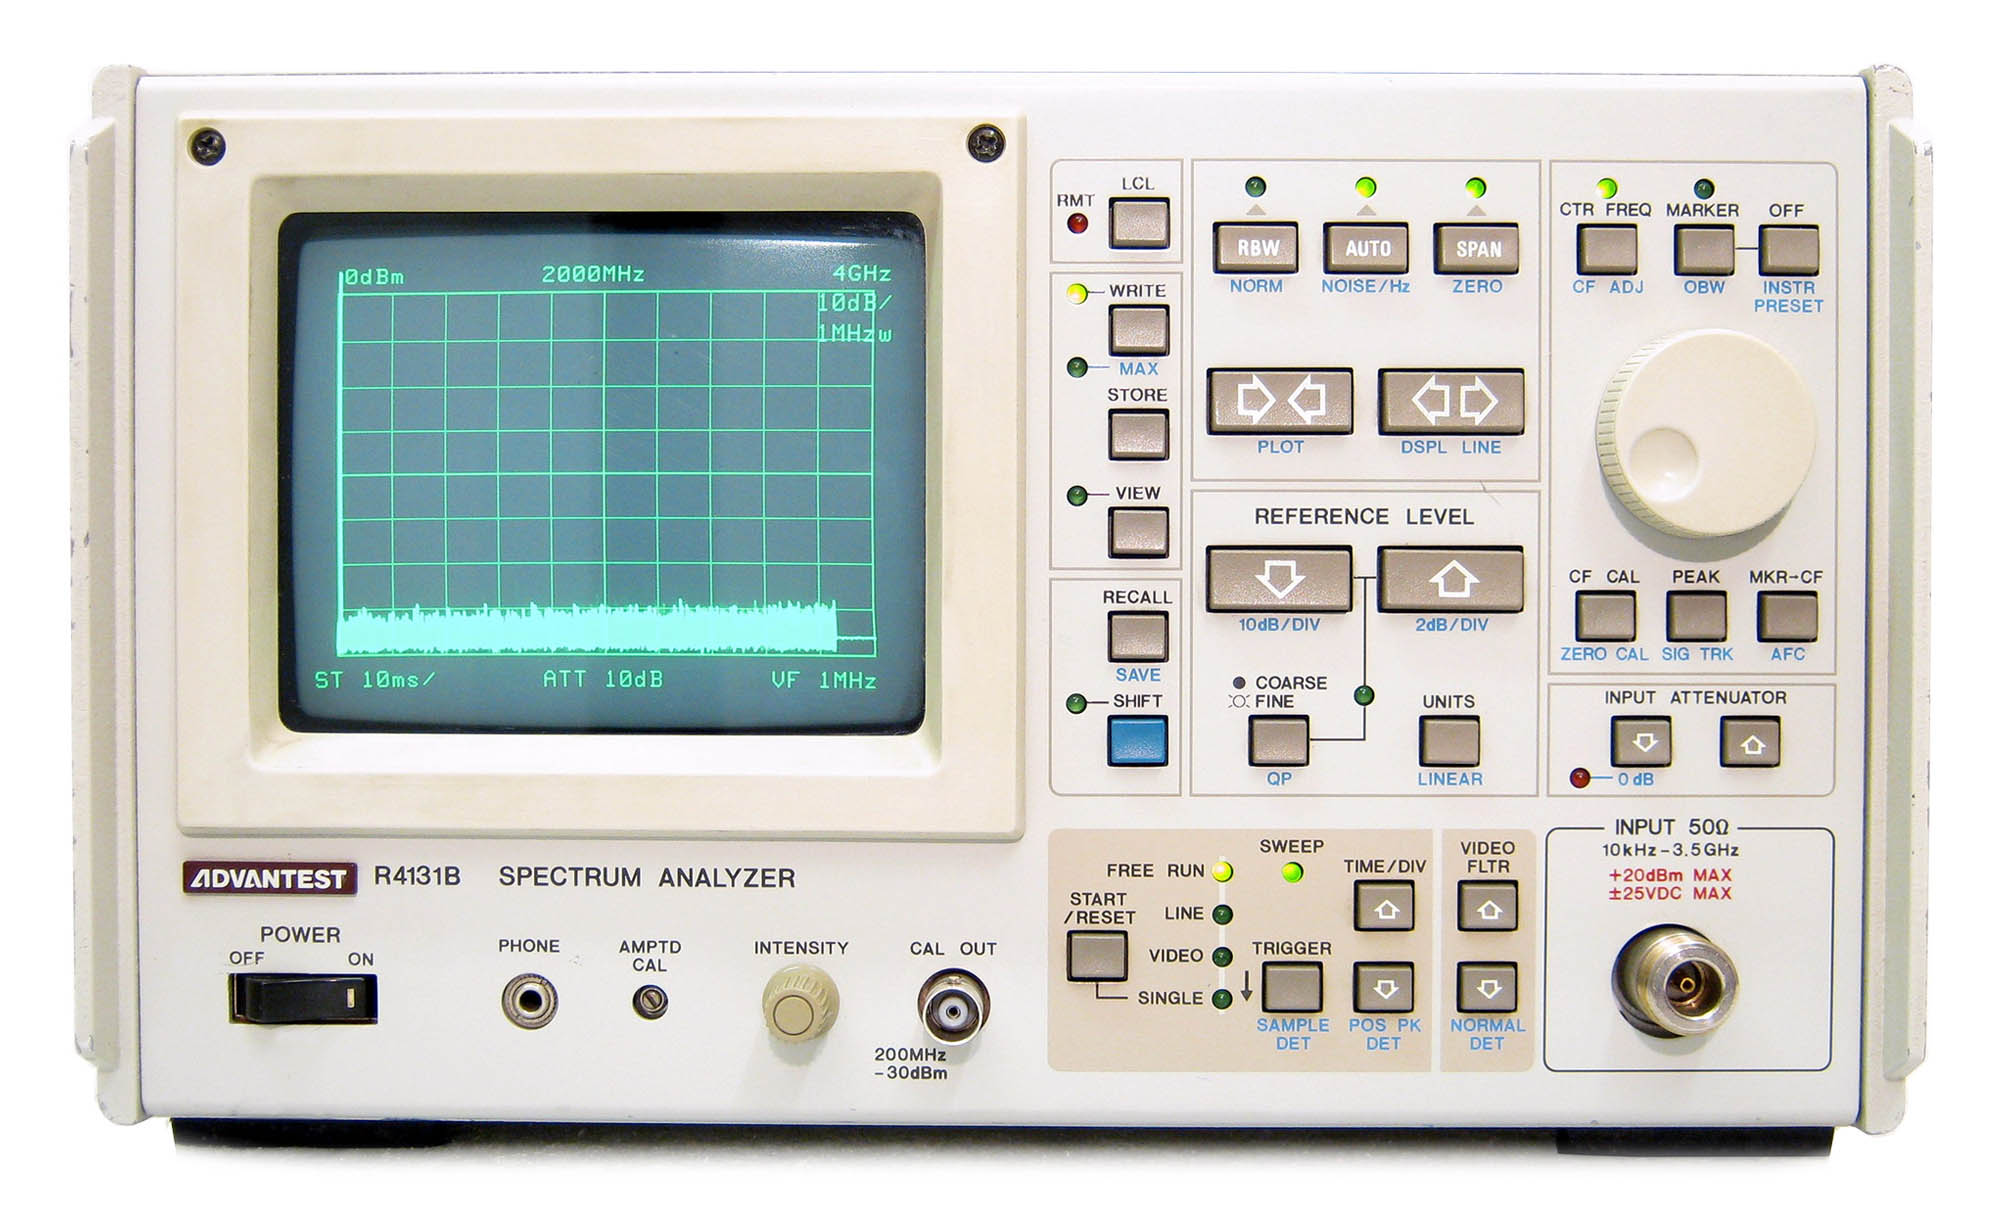 Advantest R4131D Spectrum Analyzers | Signal     | ATEC Rentals